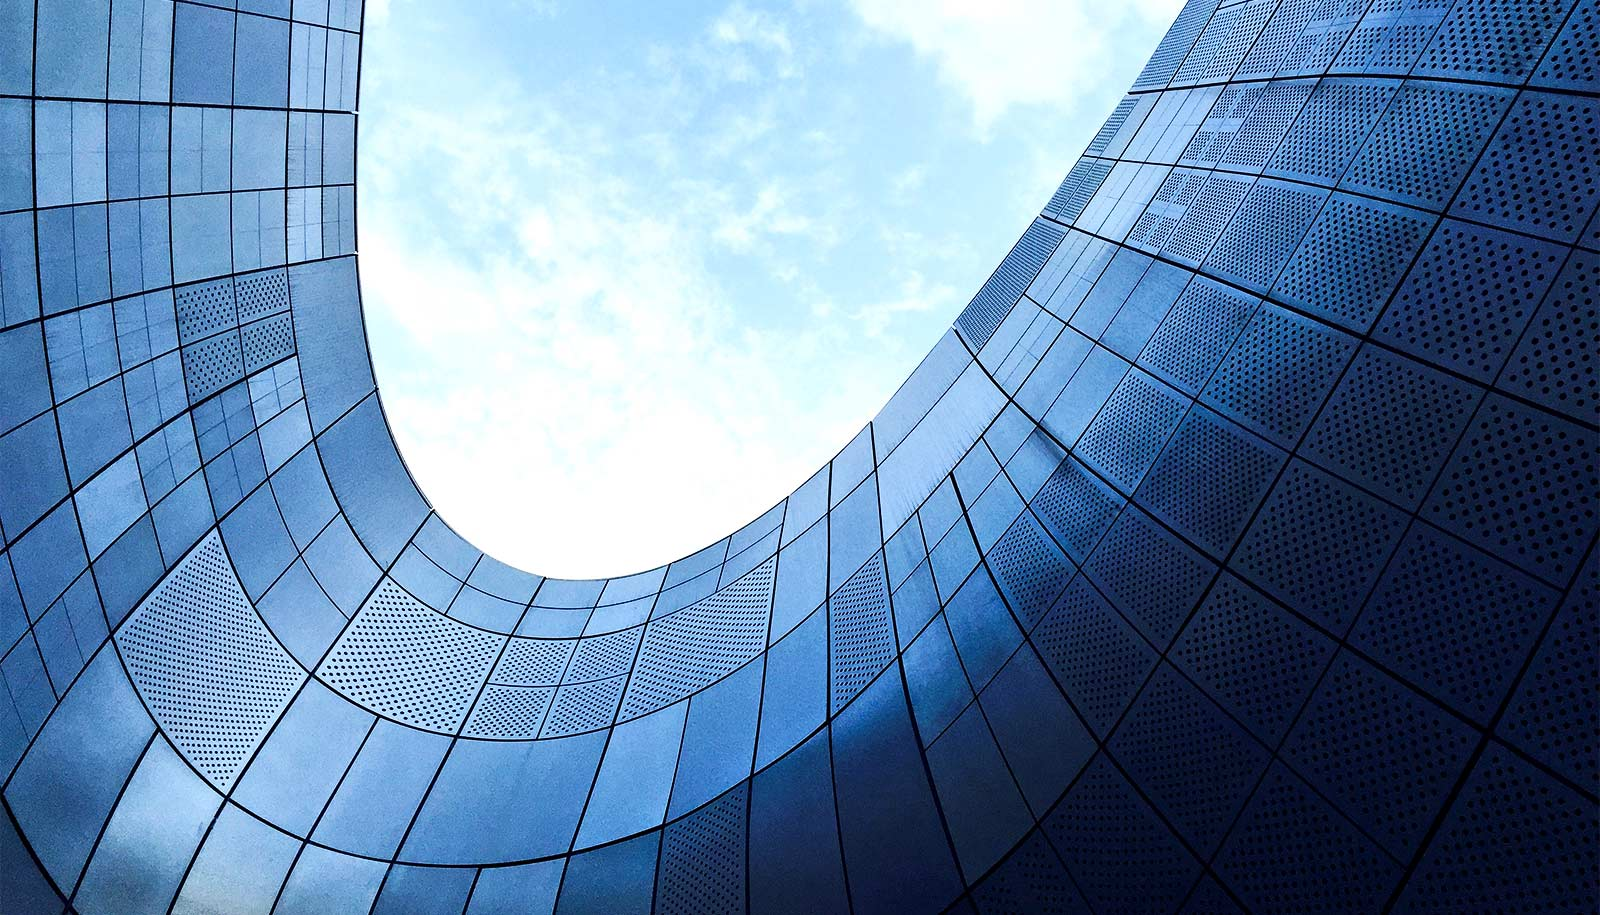 Curvy solar cells may be one step closer to reality